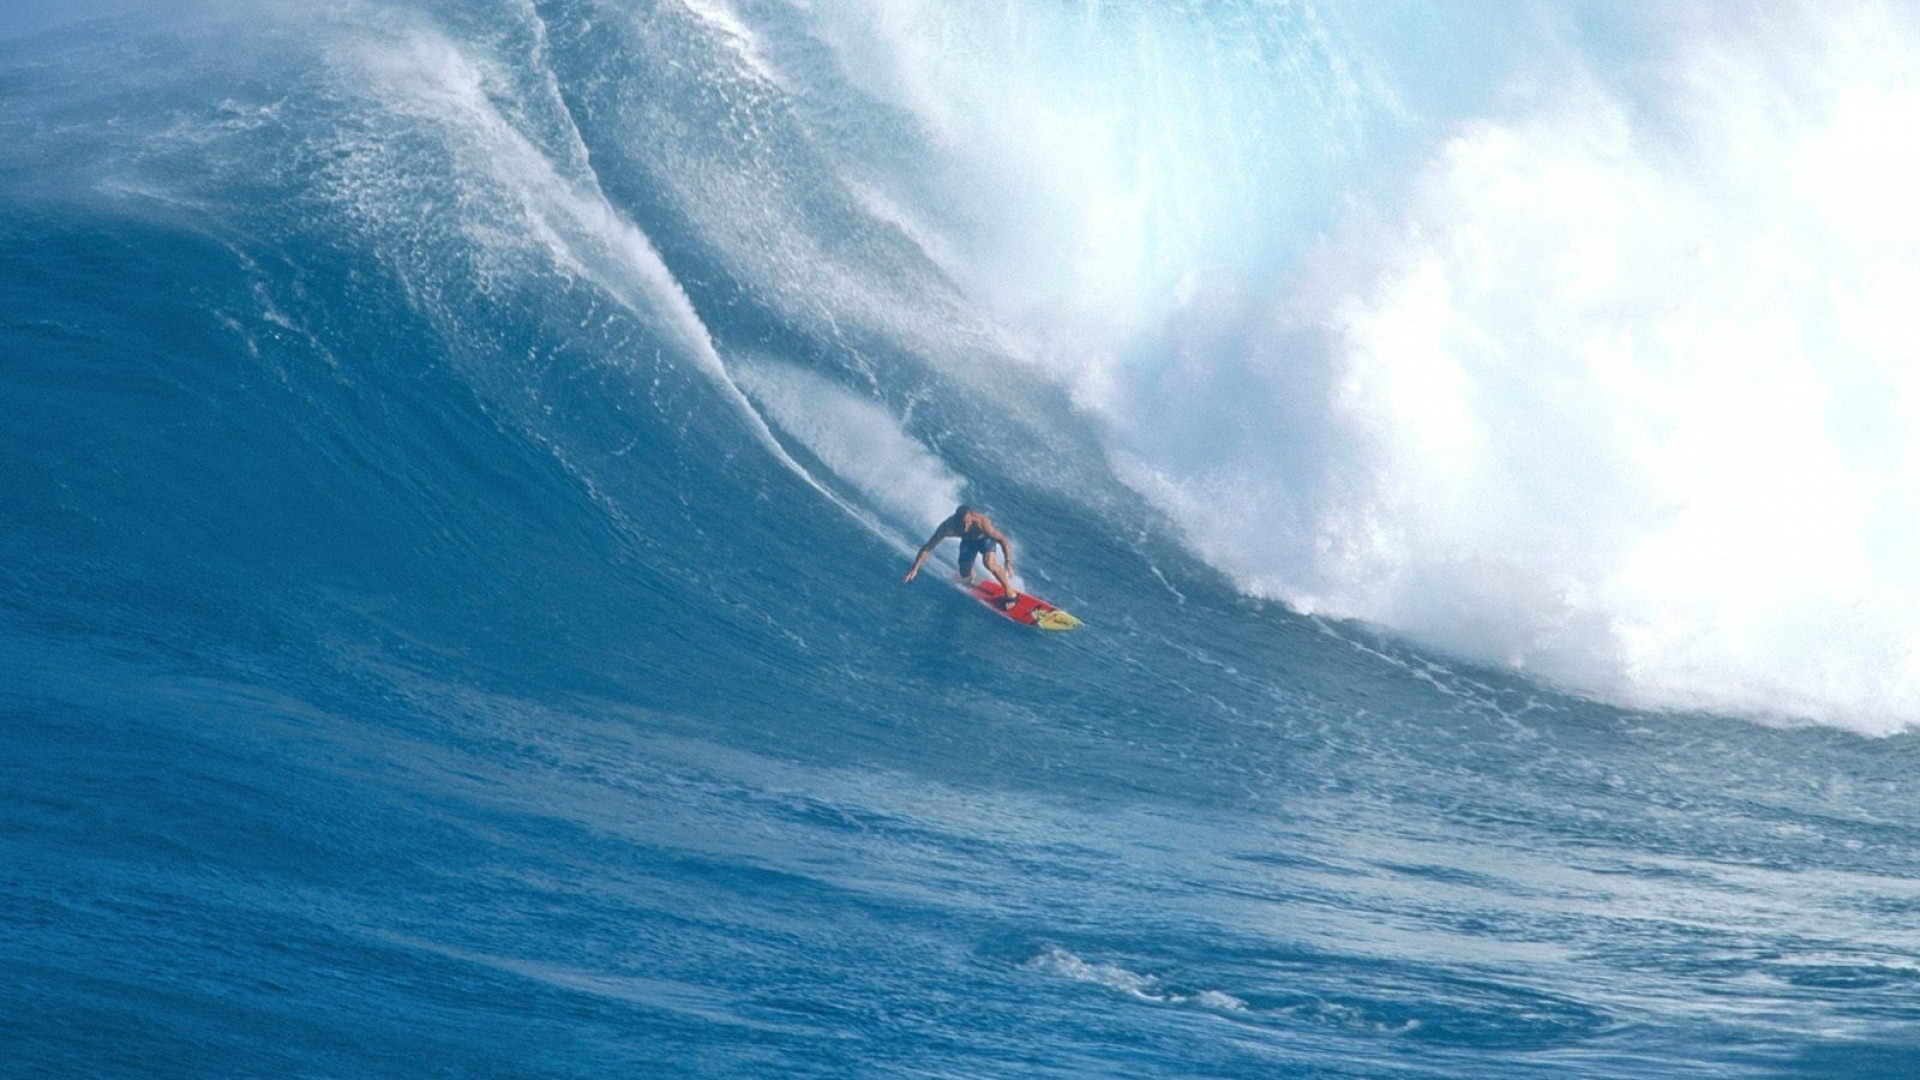 Preview wallpaper surfing, guy, board, wave, hawaii 1920×1080